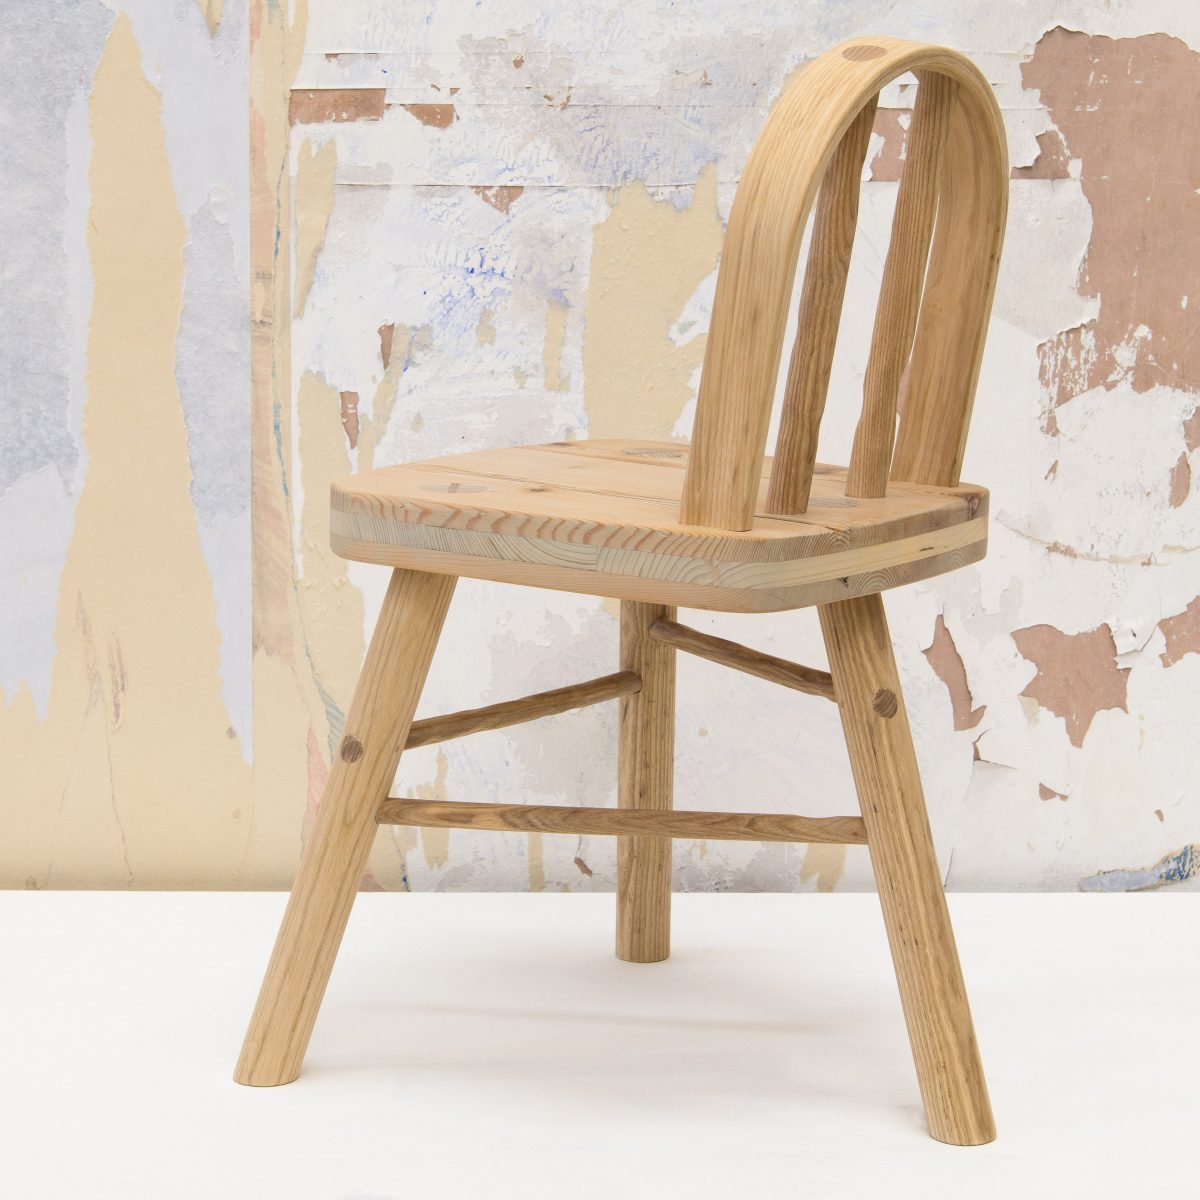 Jan Hendzel Studio lentini chair-3